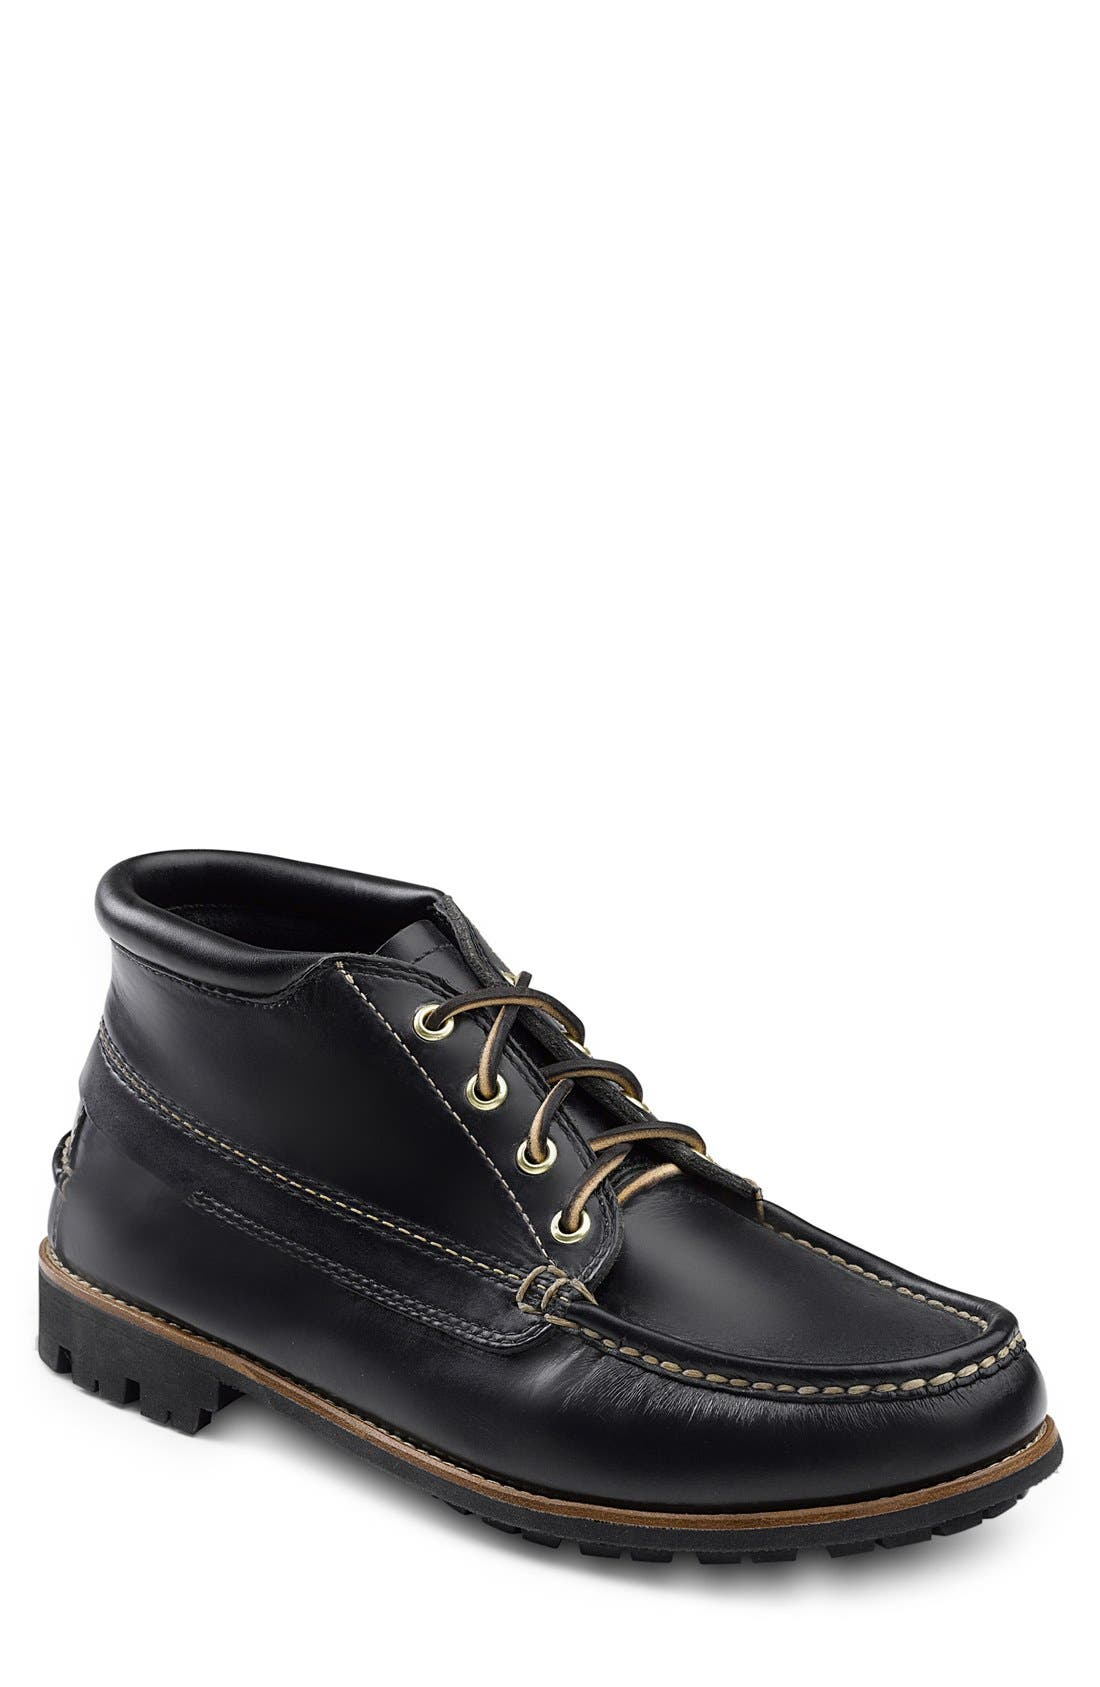 Main Image - G.H. Bass & Co. 'Abbott' Chukka Boot (Men)